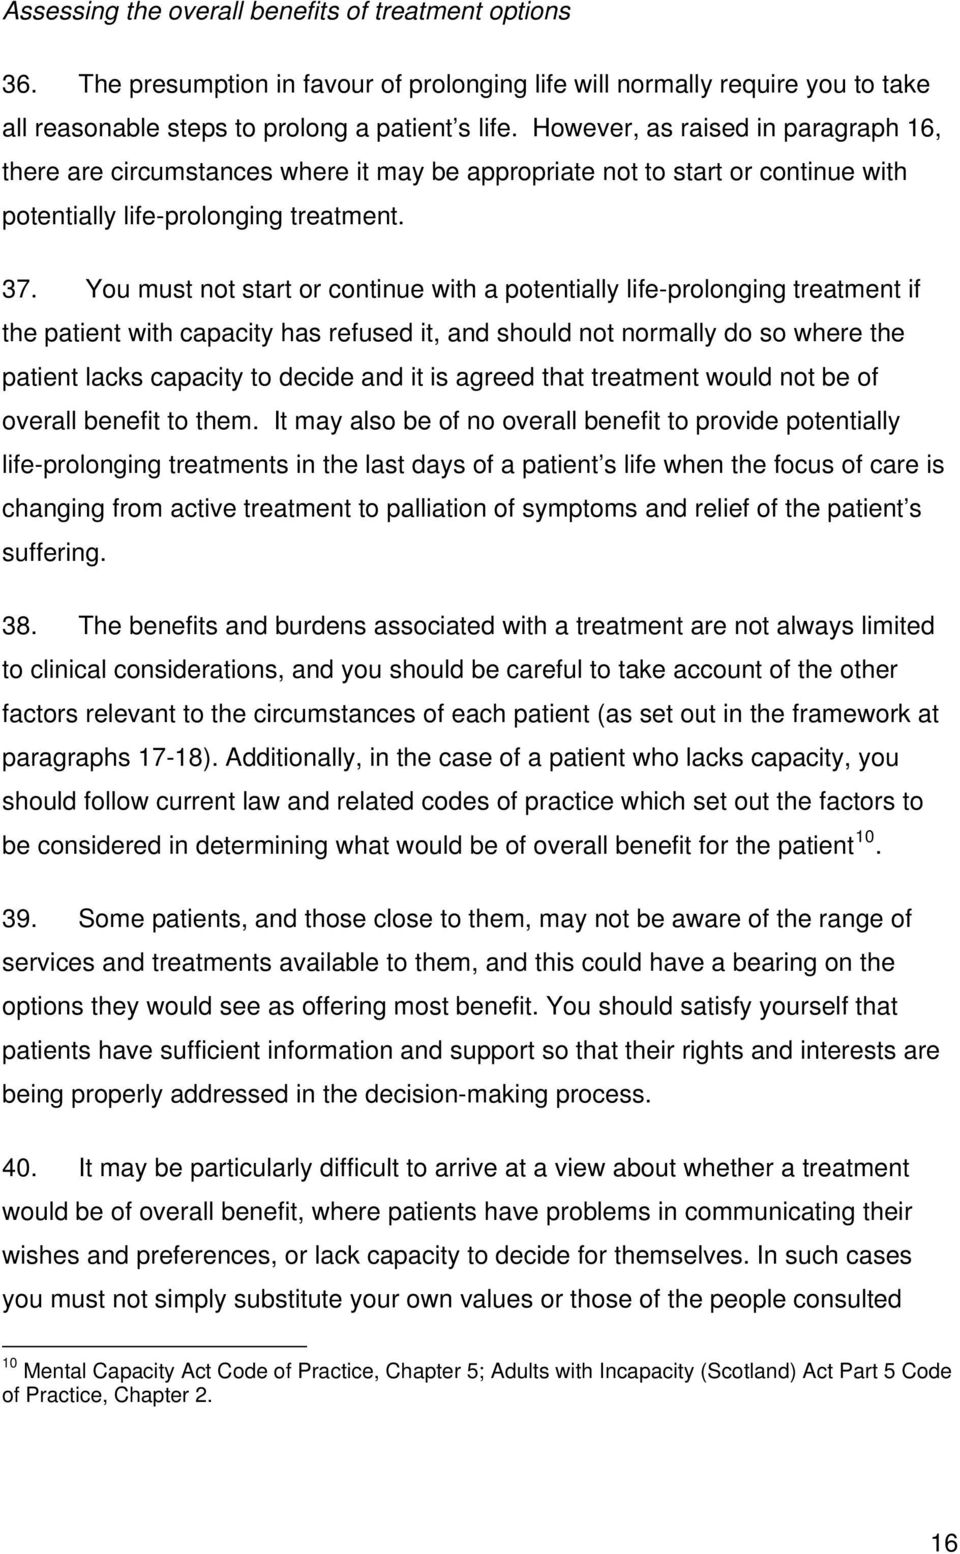 You must not start or continue with a potentially life-prolonging treatment if the patient with capacity has refused it, and should not normally do so where the patient lacks capacity to decide and